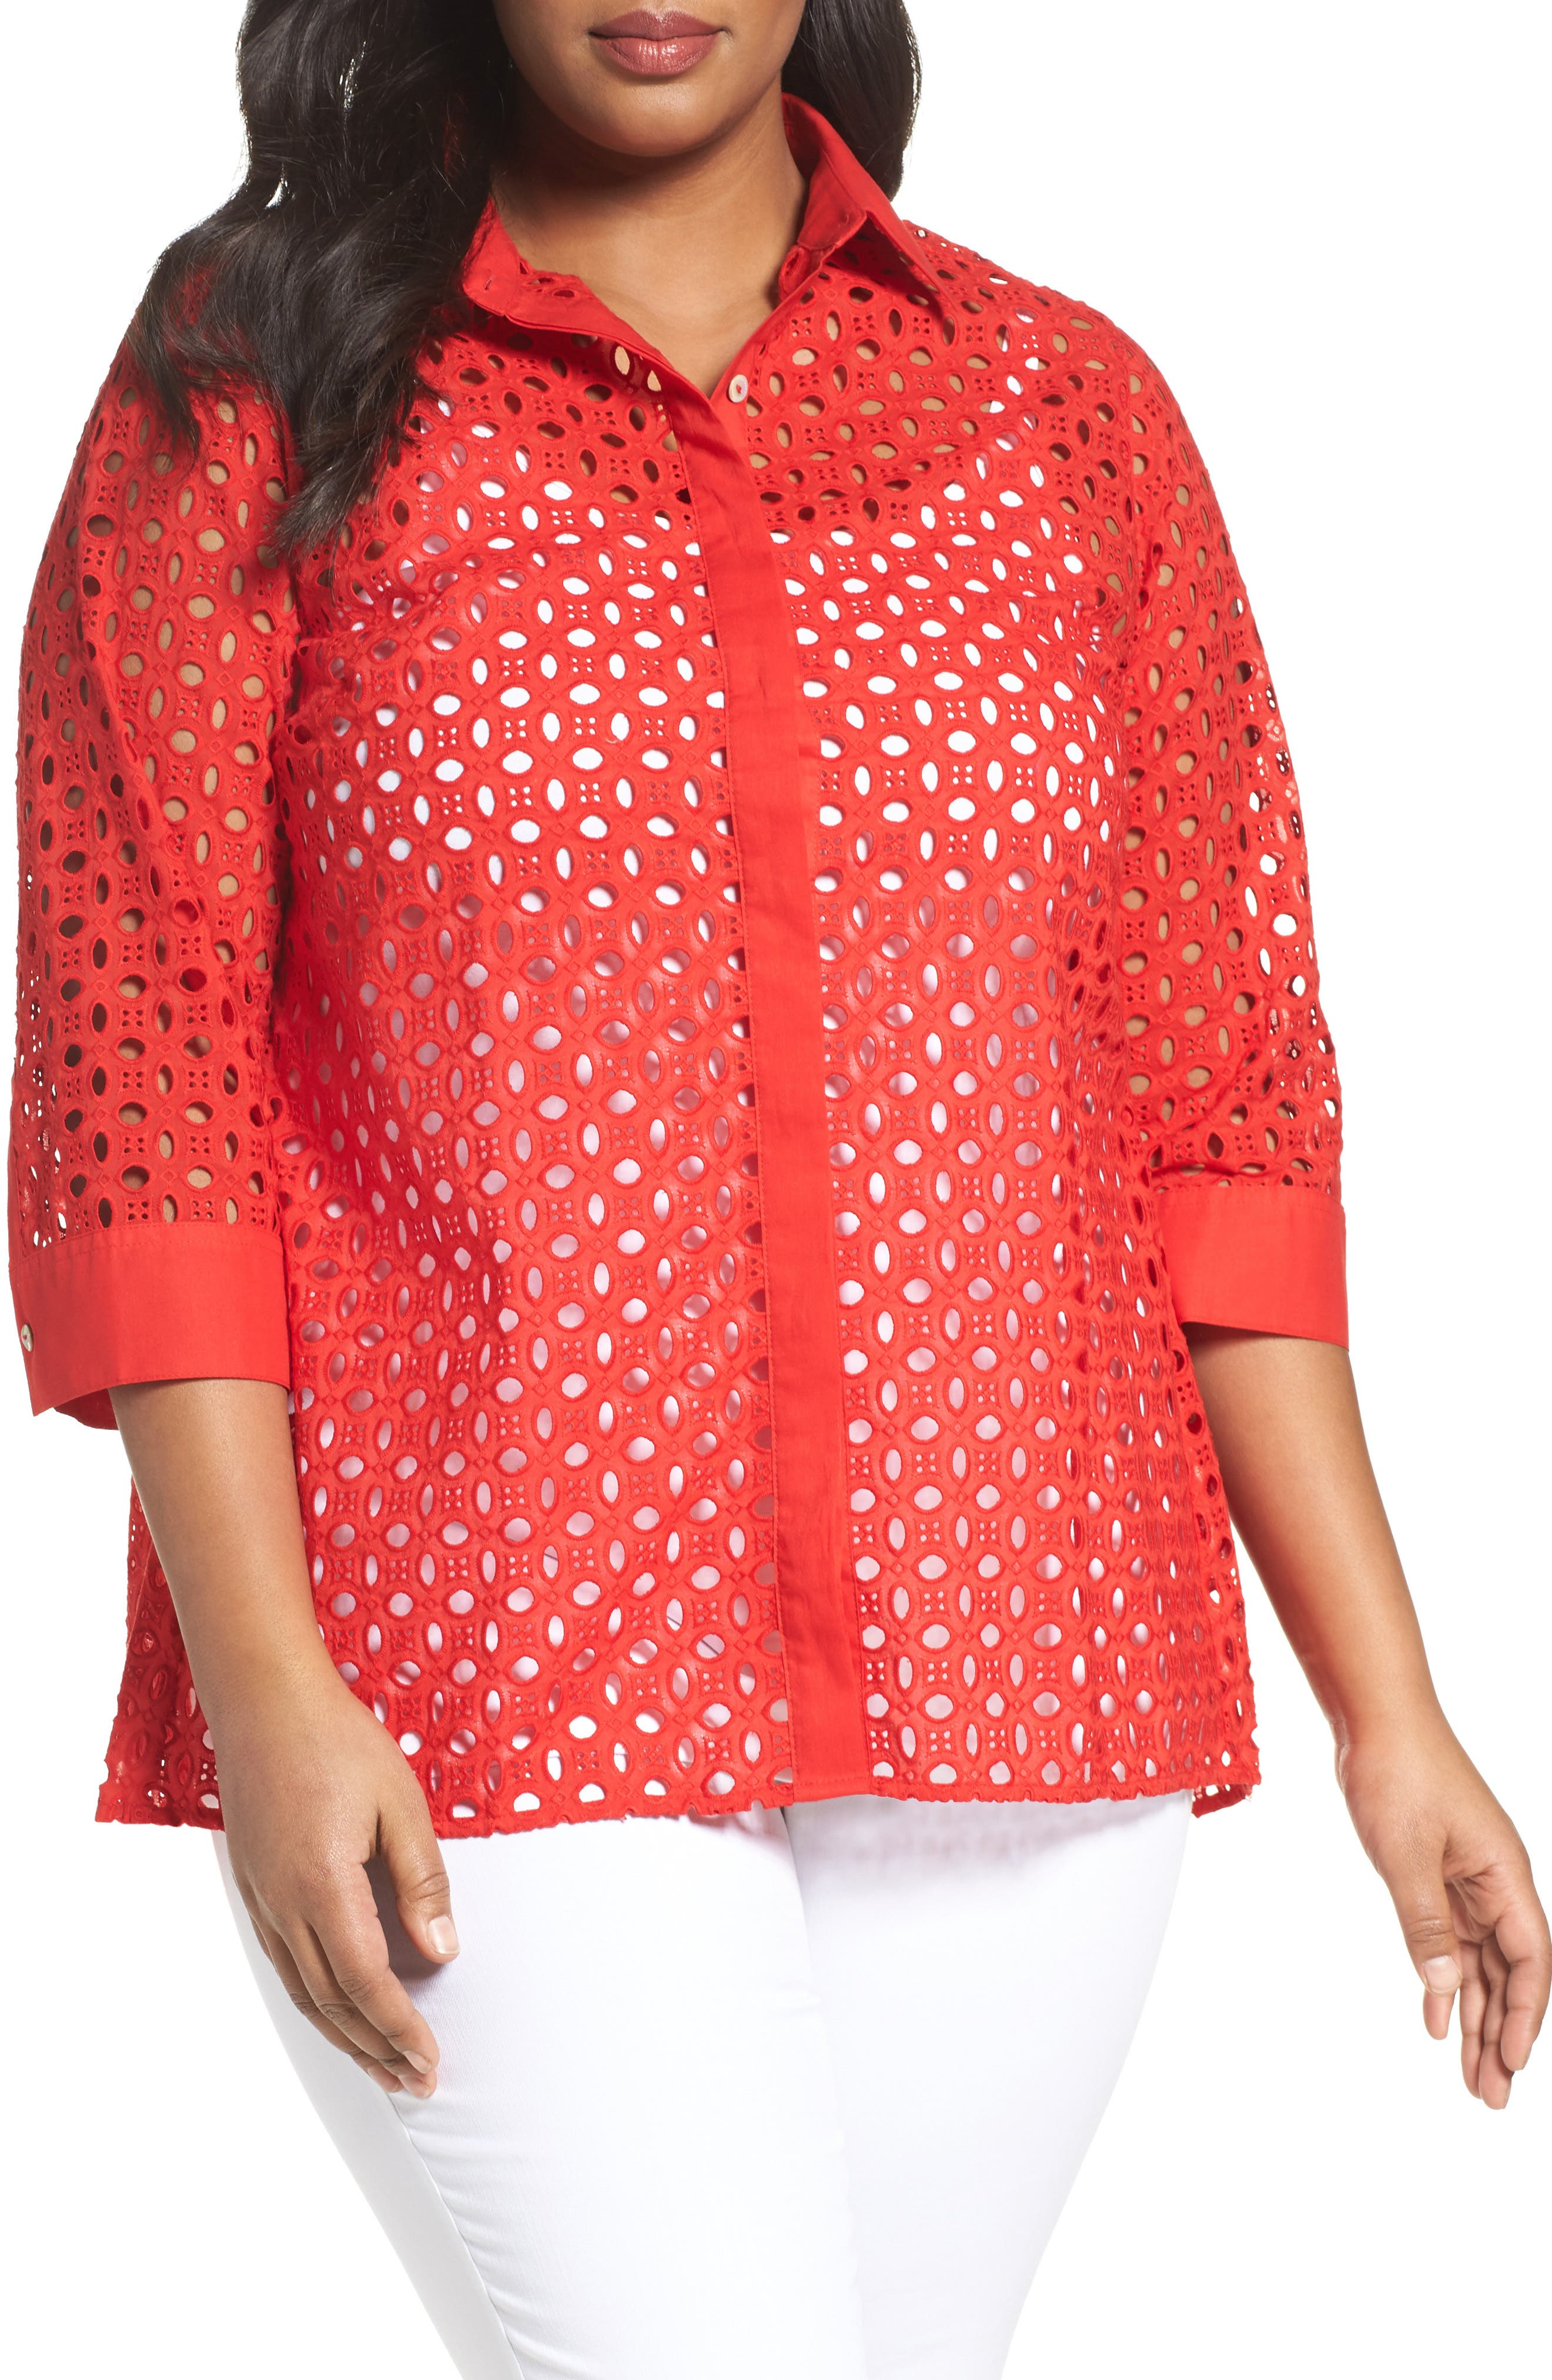 Alternate Image 1 Selected - Foxcroft Eyelet Cotton Tunic (Plus Size)